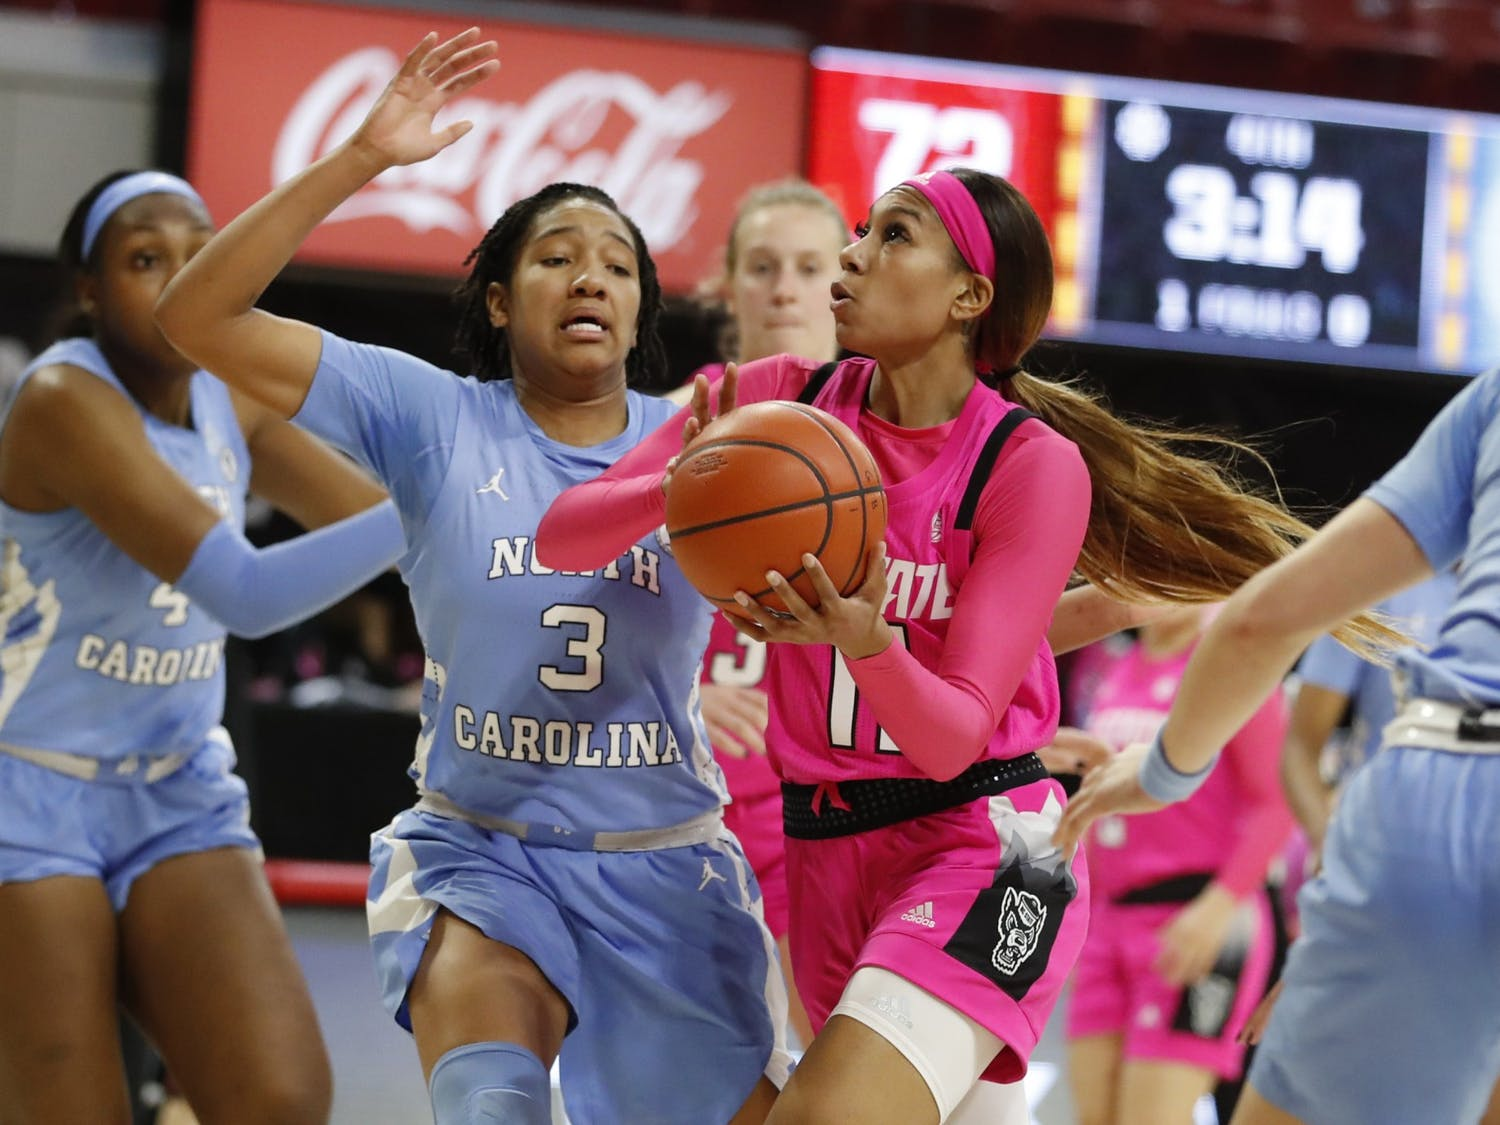 N.C. State's Jakia Brown-Turner (11) drives to the basket past North Carolina's Kennedy Todd-Williams (3) during the second half of N.C. State's 82-63 victory over UNC in the annual Play4Kay game at Reynolds Coliseum in Raleigh, N.C., Sunday, February 21, 2021. Photo courtesy of Ethan Hyman.